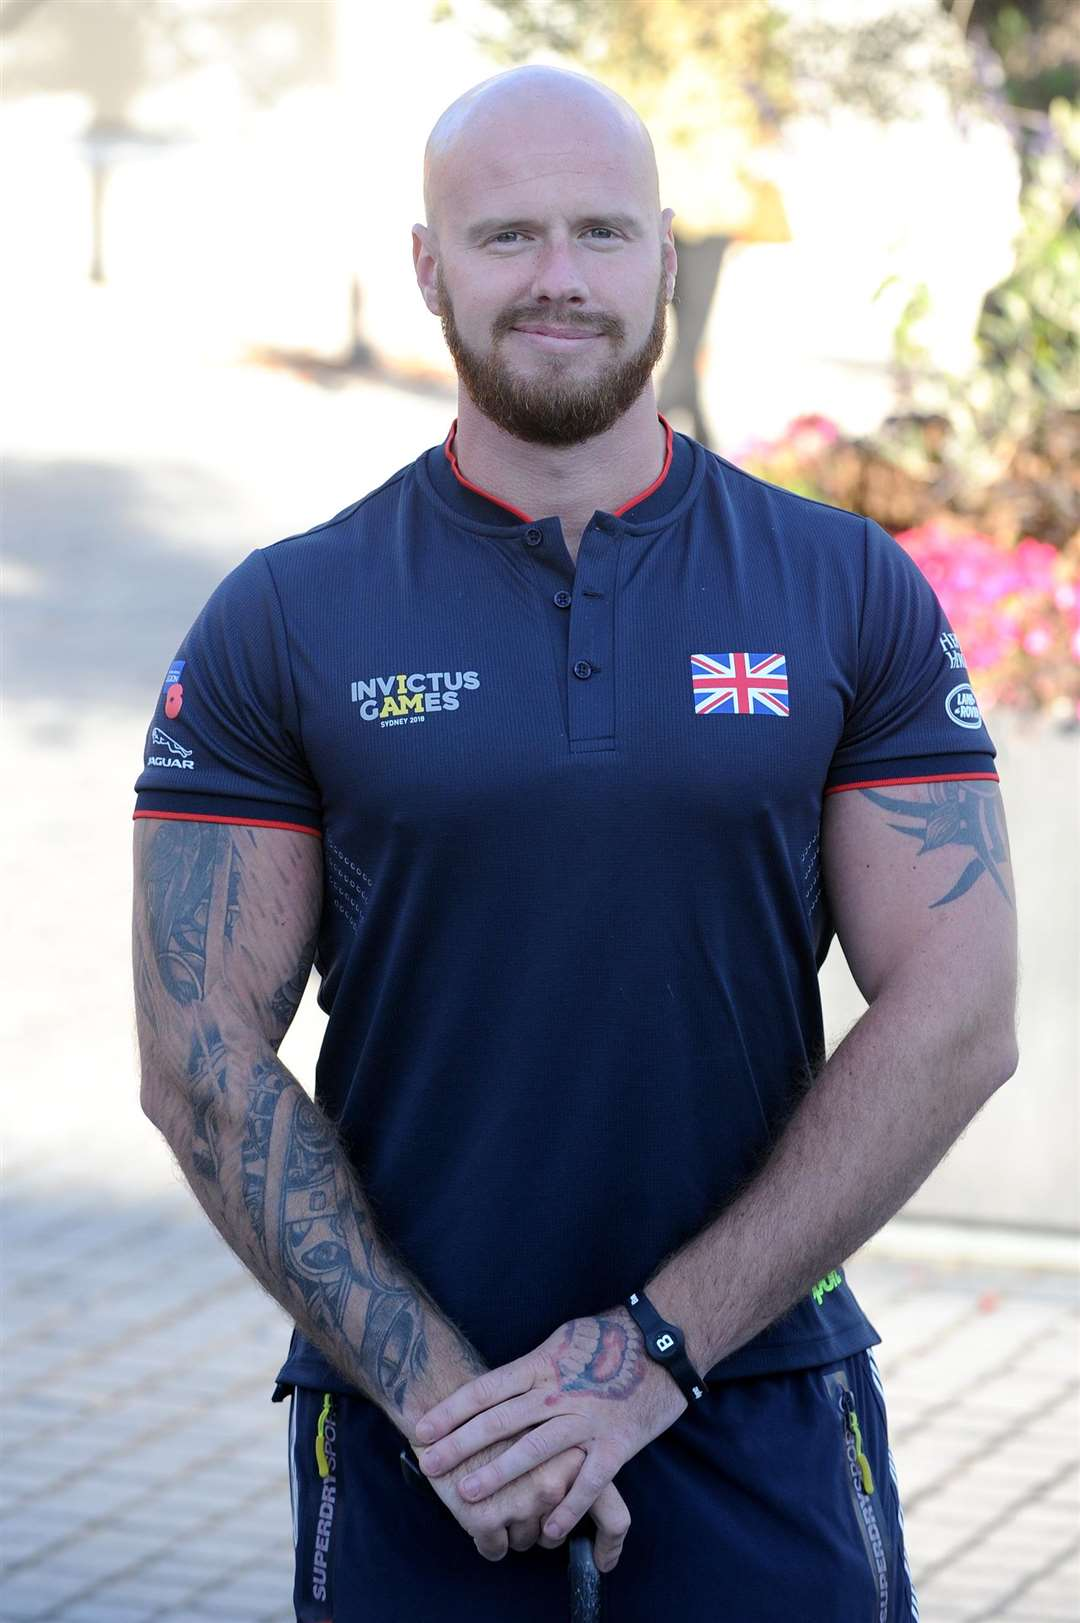 Alex and Matt Tate are fresh off the plane from their Invictus Games appearance in Sydney last week. Alex won a gold (long jump) as well as silver and a bronze (100m) medal, while Matt produced a competition PB (Midweight Powerlifter)...Pictured: Matt...PICTURE: Mecha Morton... .. (5144787)